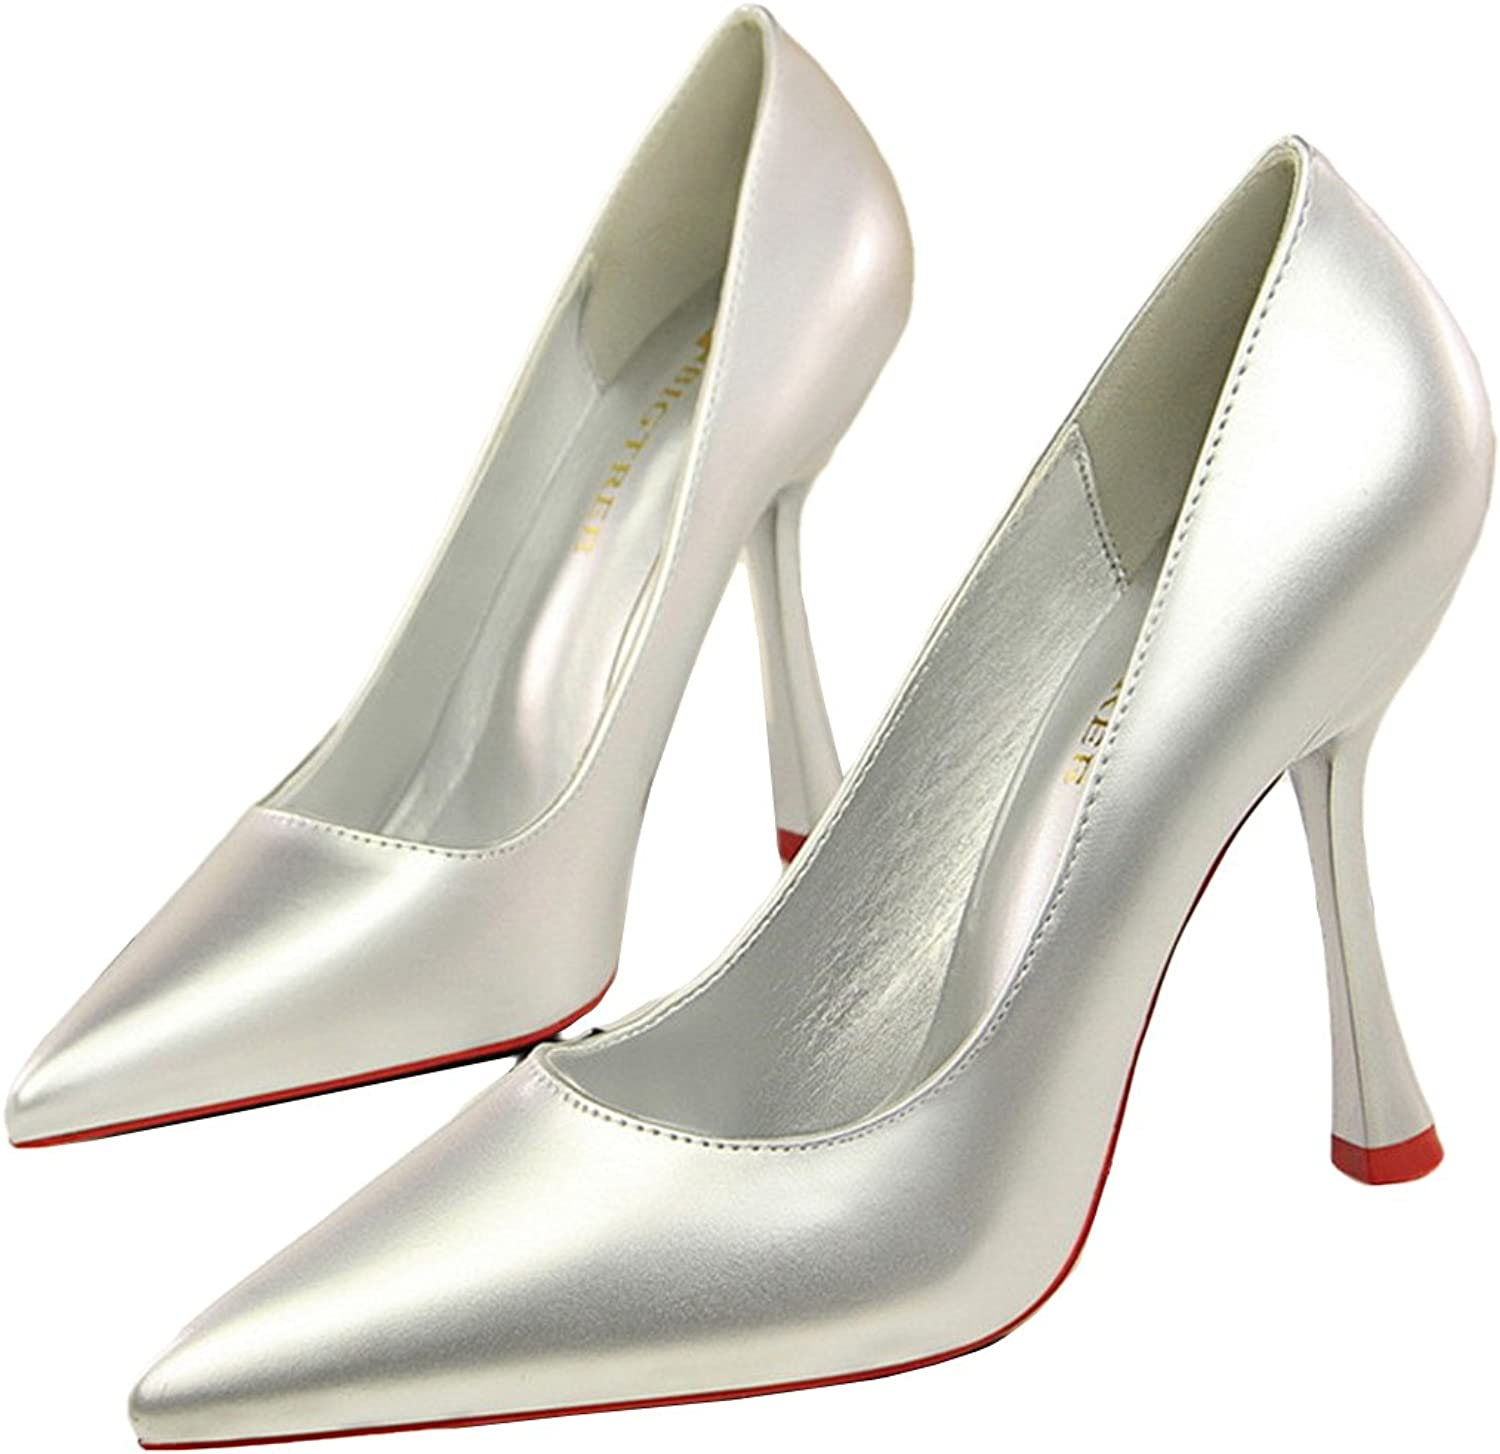 Owen Moll Women Pumps, Concise Patent Leather 10 cm Pointed Toe Shallow Work Sandal shoes